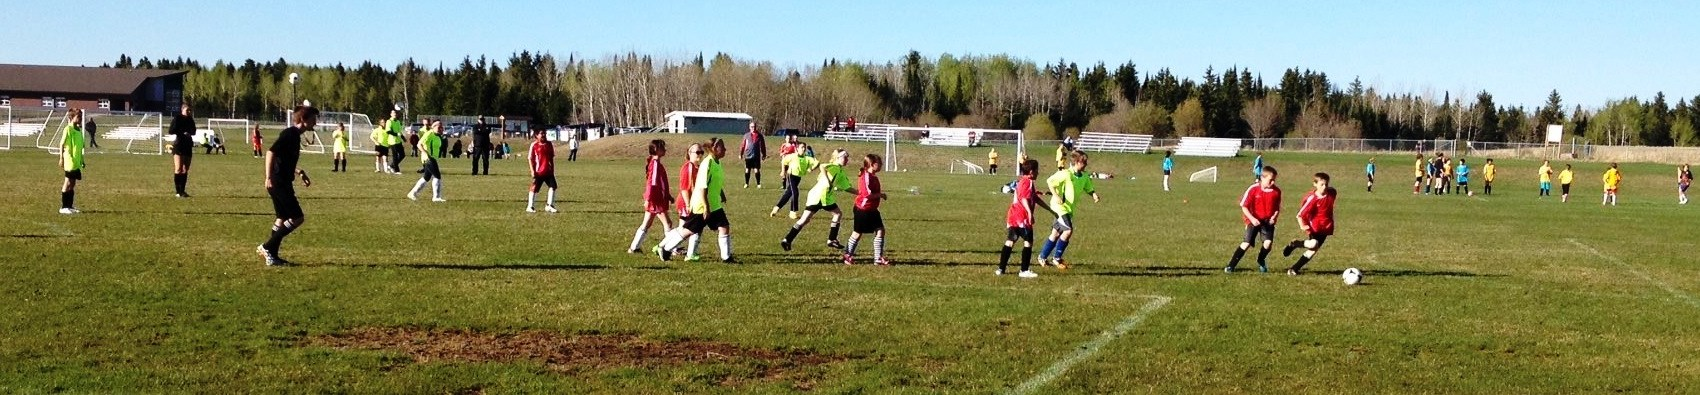 Picture of youth soccer at Rotary Park